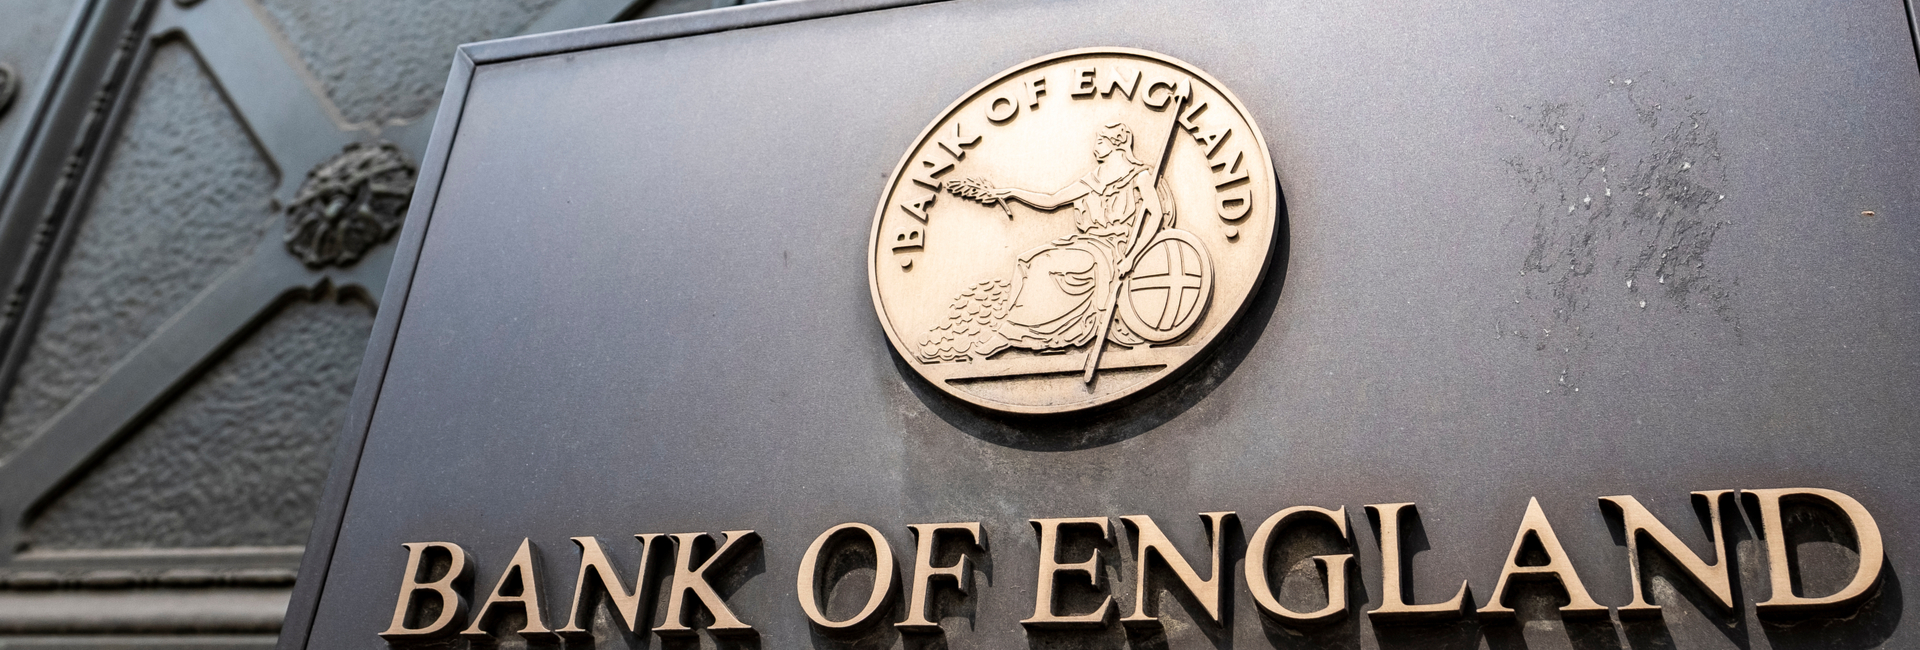 """sign with """"Bank of England"""" and bank's insignia in gold letters on black background"""